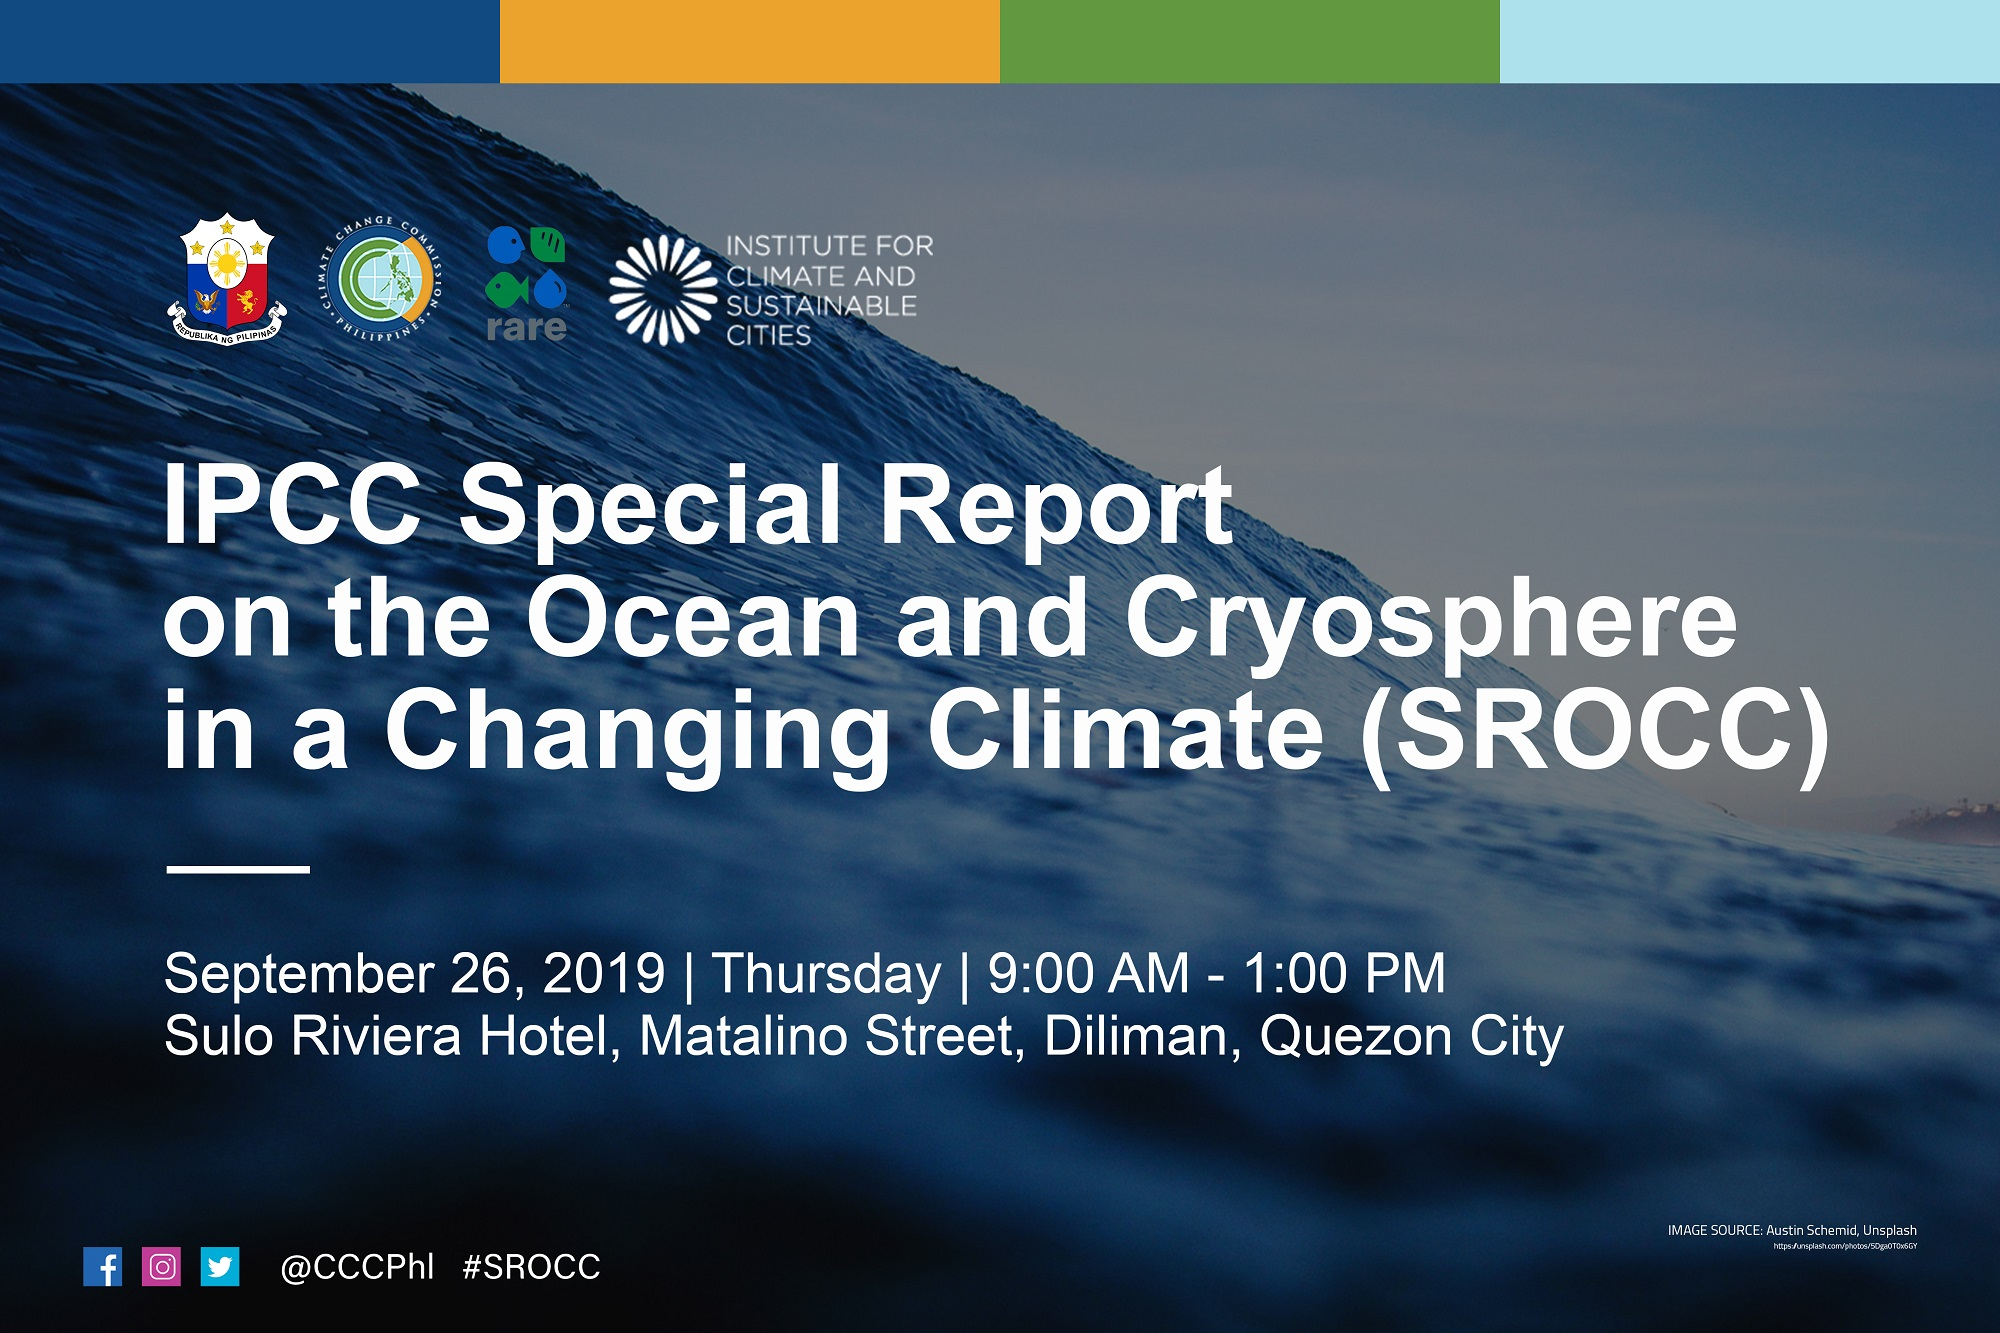 Press Briefing on IPCC Special Report on Ocean and Cryosphere in a Changing Climate